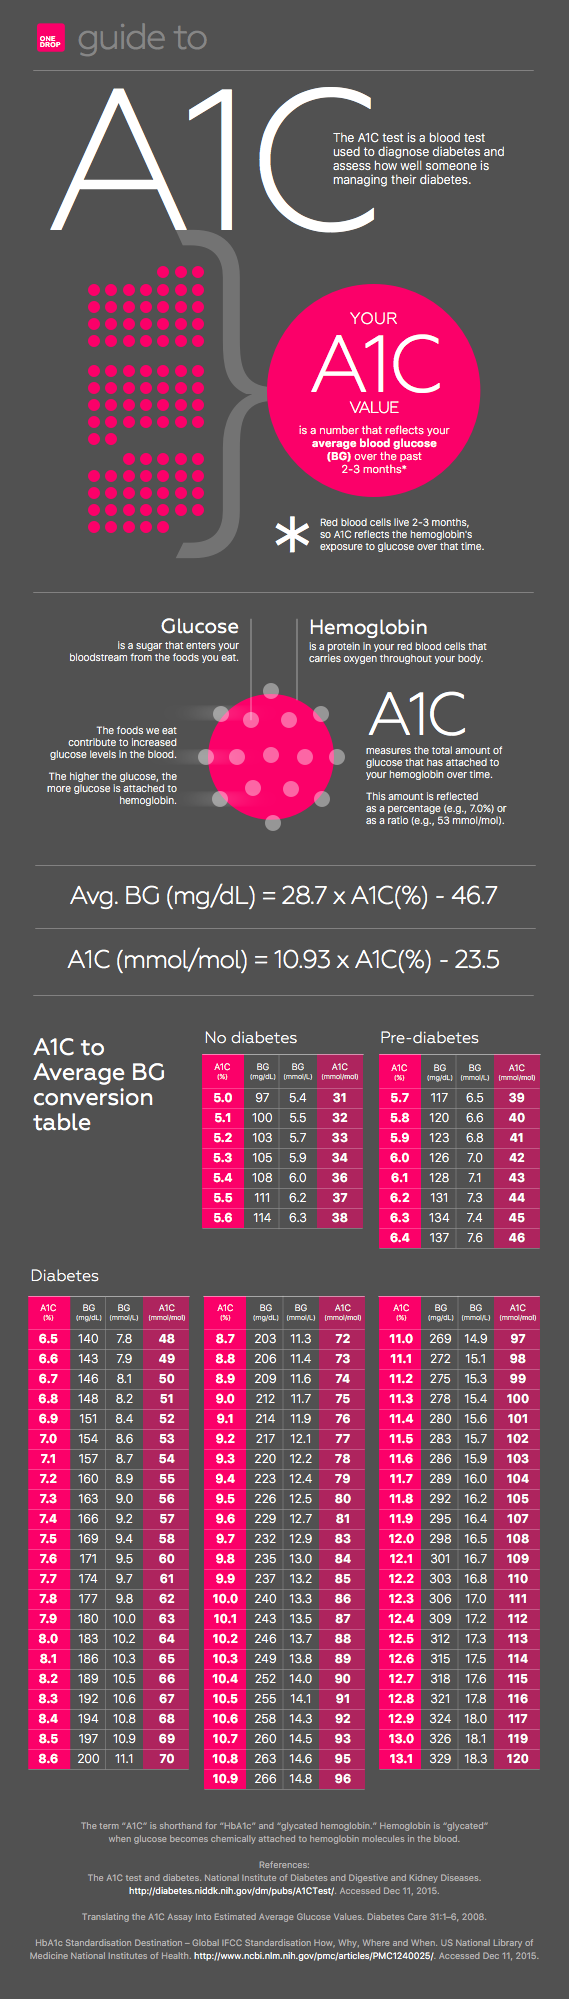 A1c Average Blood Glucoseblood Sugar Explanation And Conversion